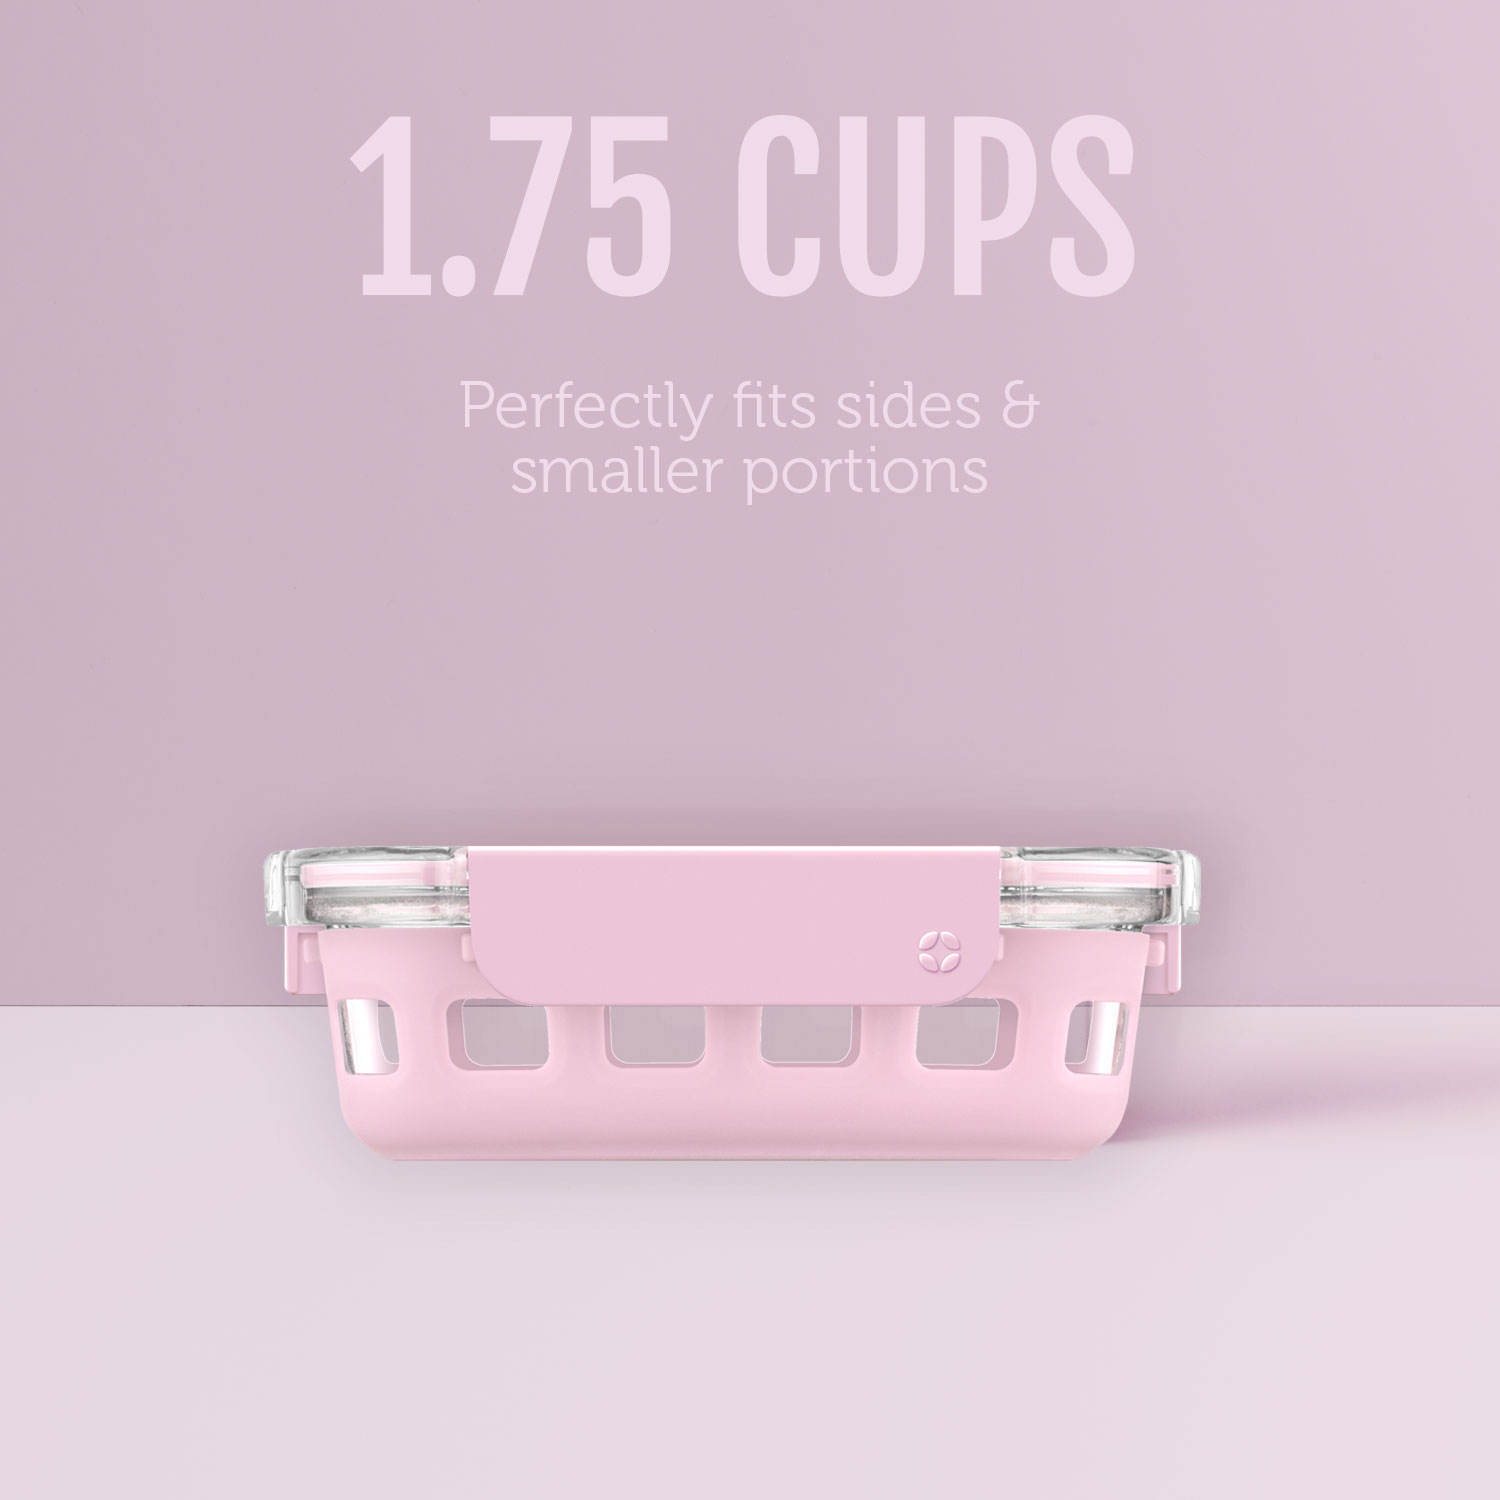 1.75 Cups